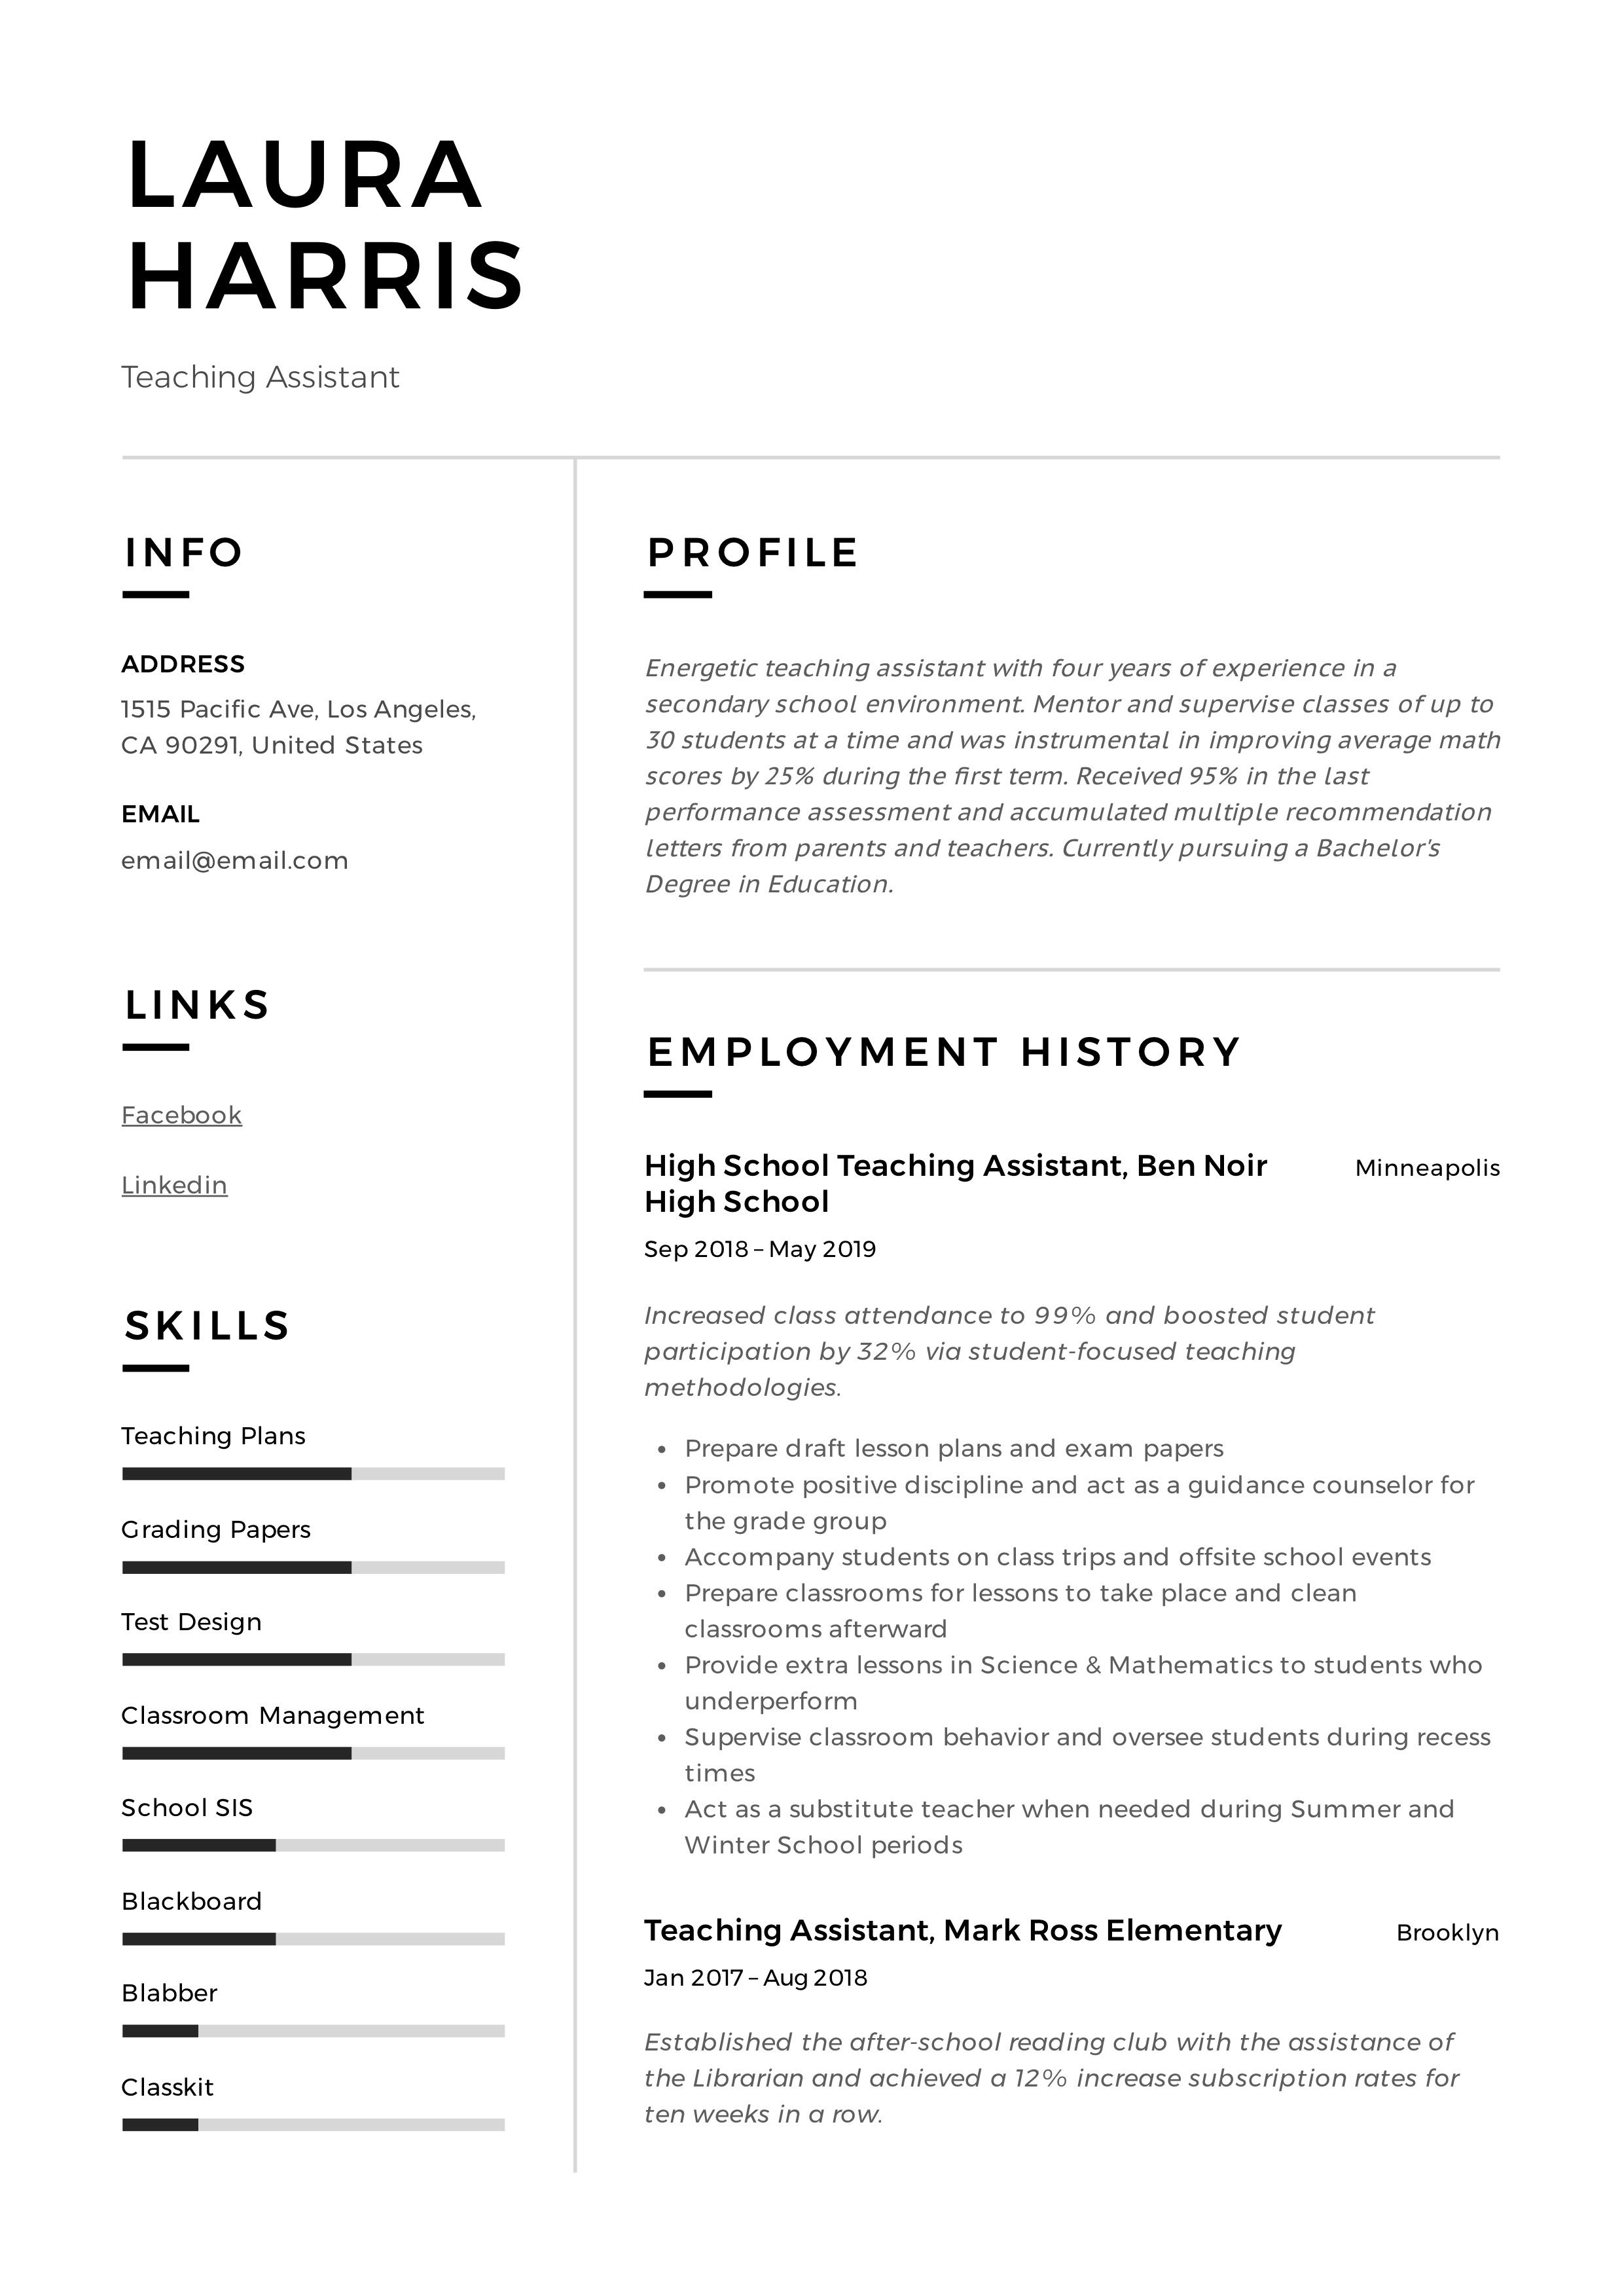 Teaching Assistant Resume Writing Guide 12 Templates Pdf